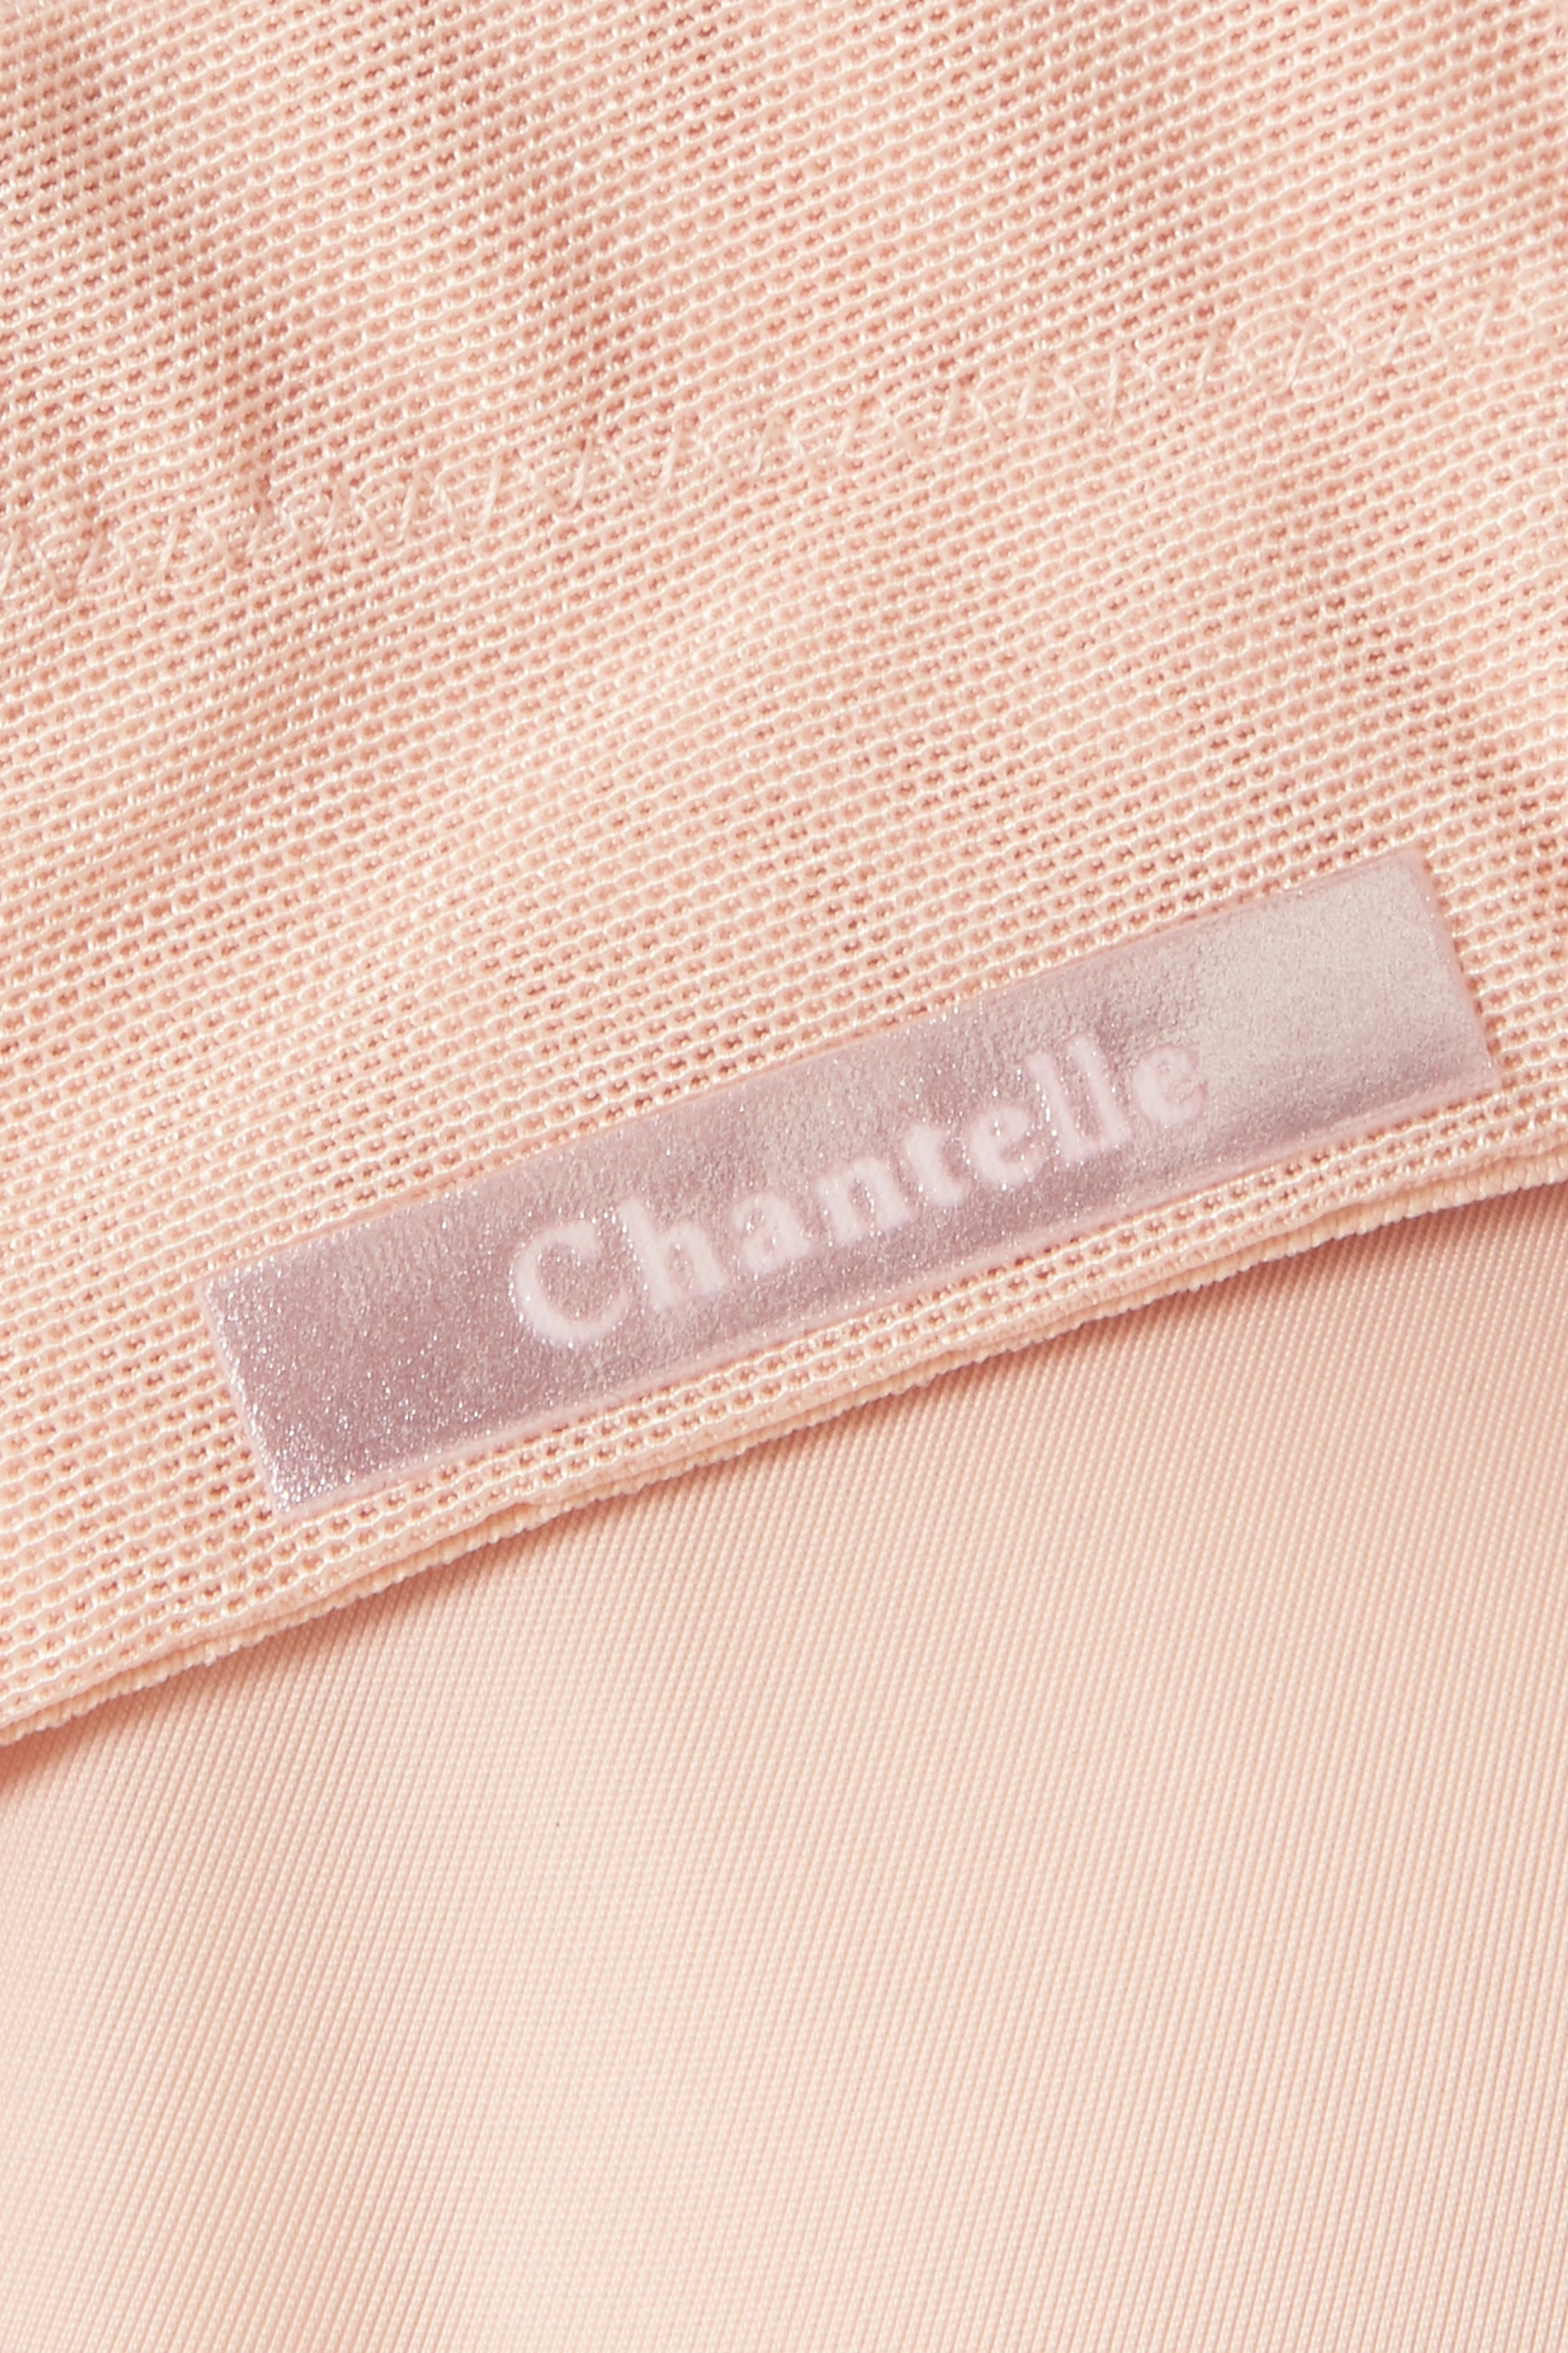 Chantelle Absolute Invisible stretch underwired T-shirt bra